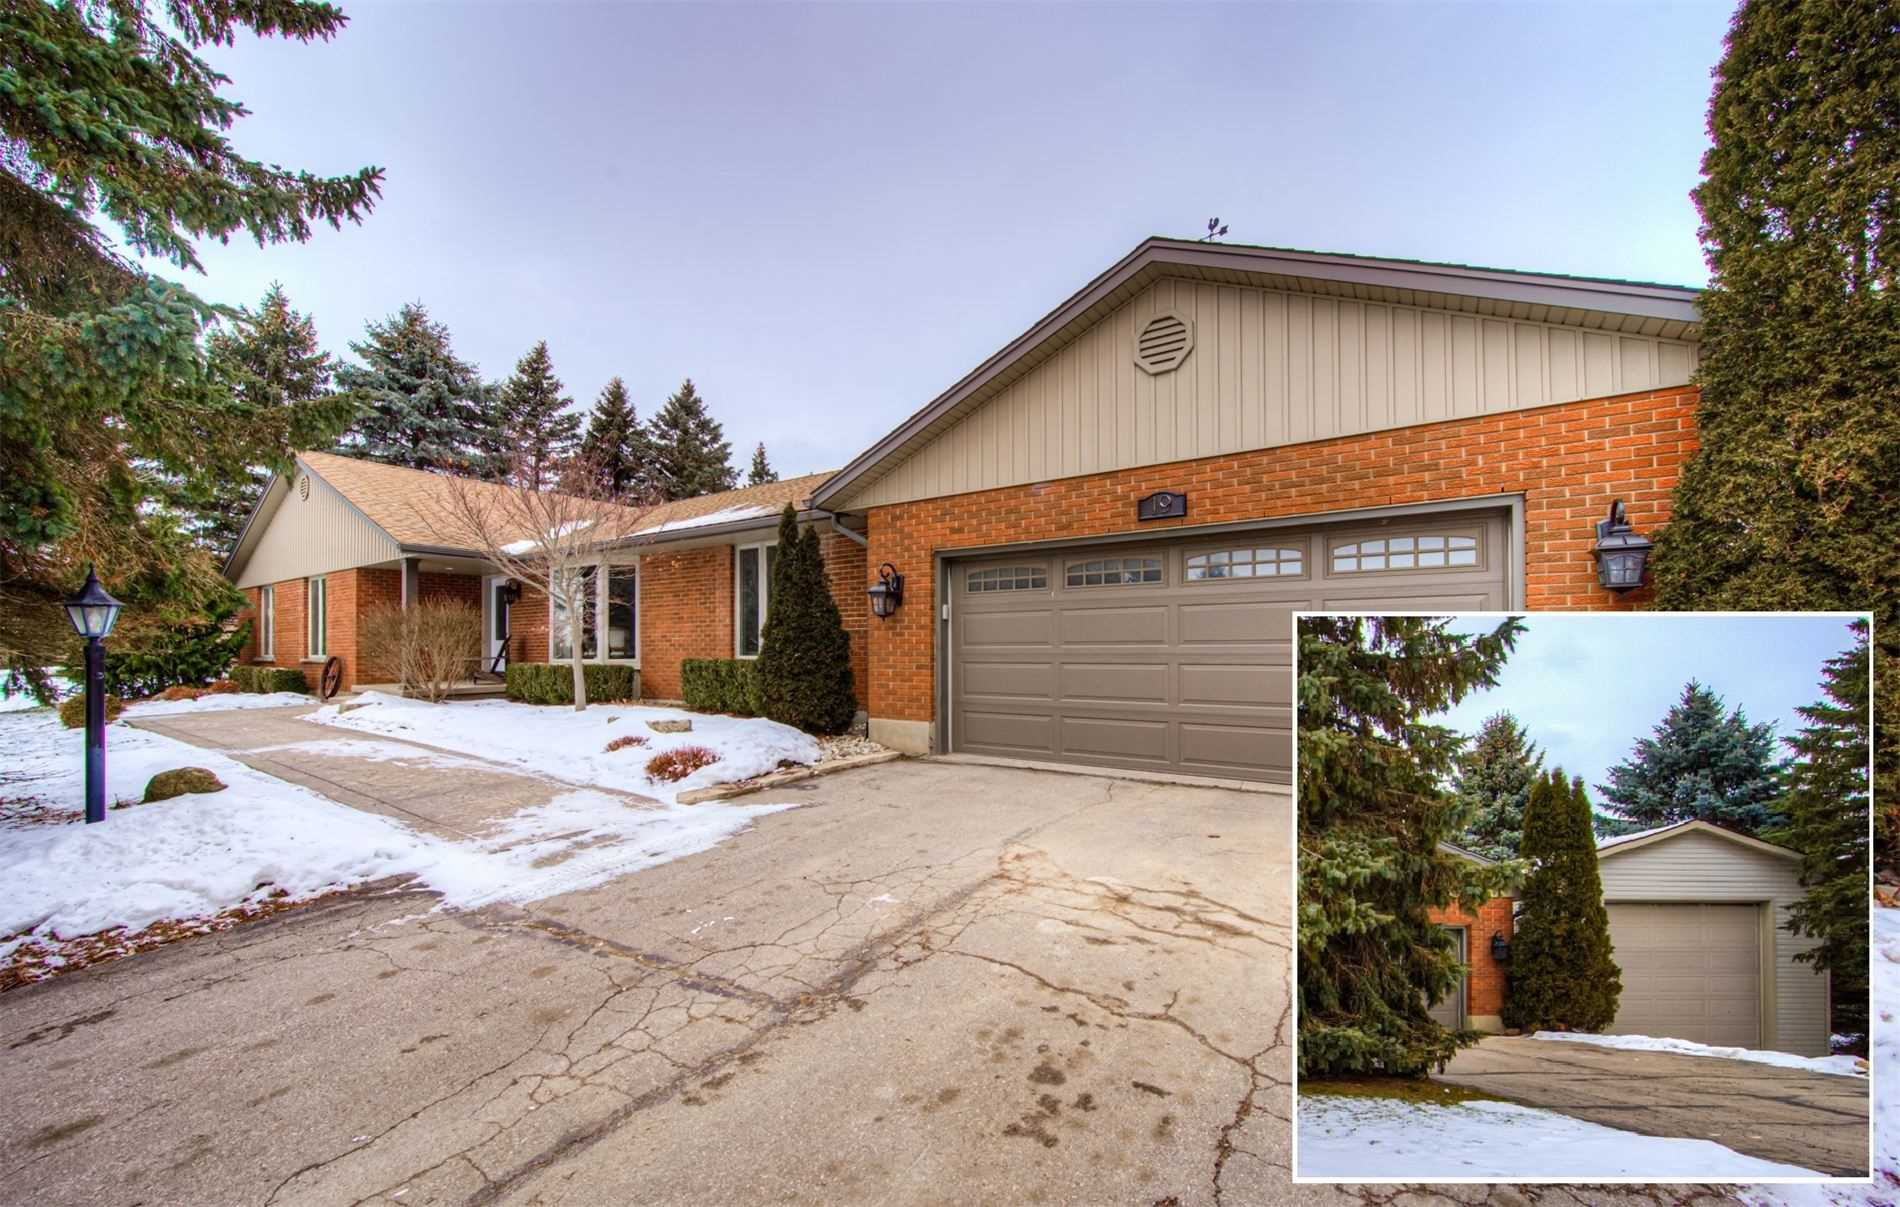 pictures of house for sale MLS: X5092408 located at 19 Clydebank Dr, North Dumfries N1R5S5